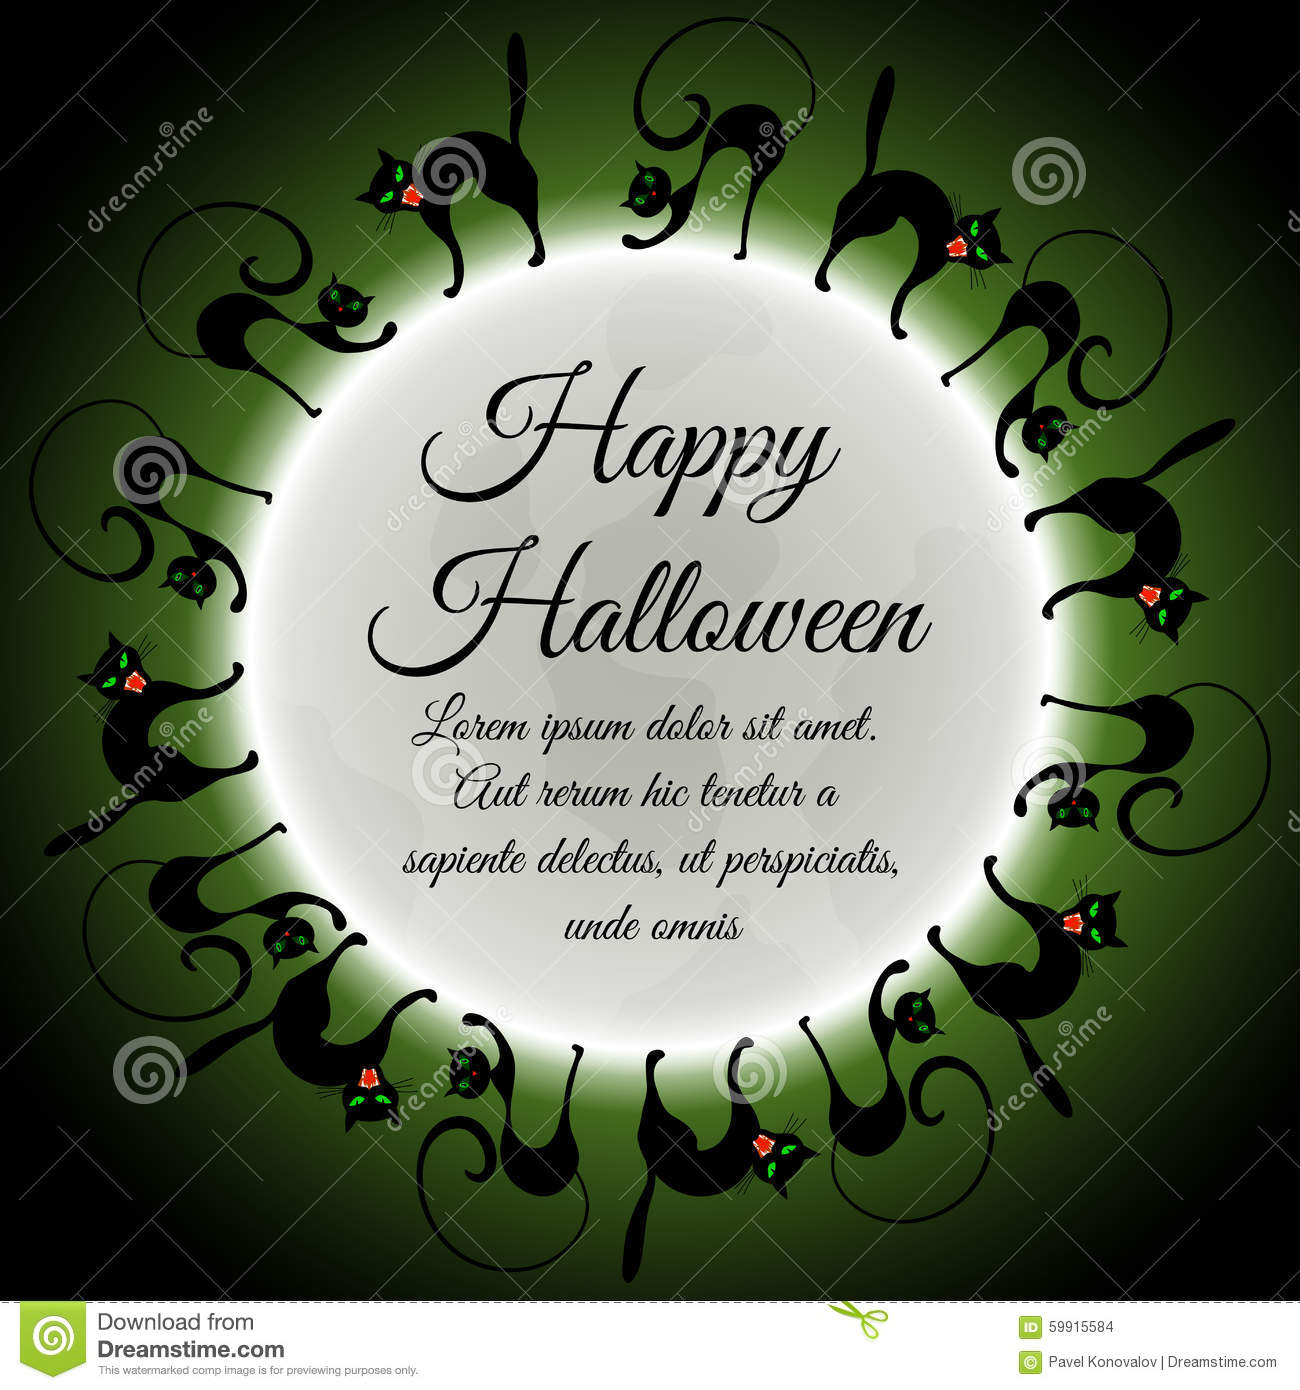 halloween-greeting-card-elegant-design-moon-green-sky-different-cats-around-moon-vector-illustration